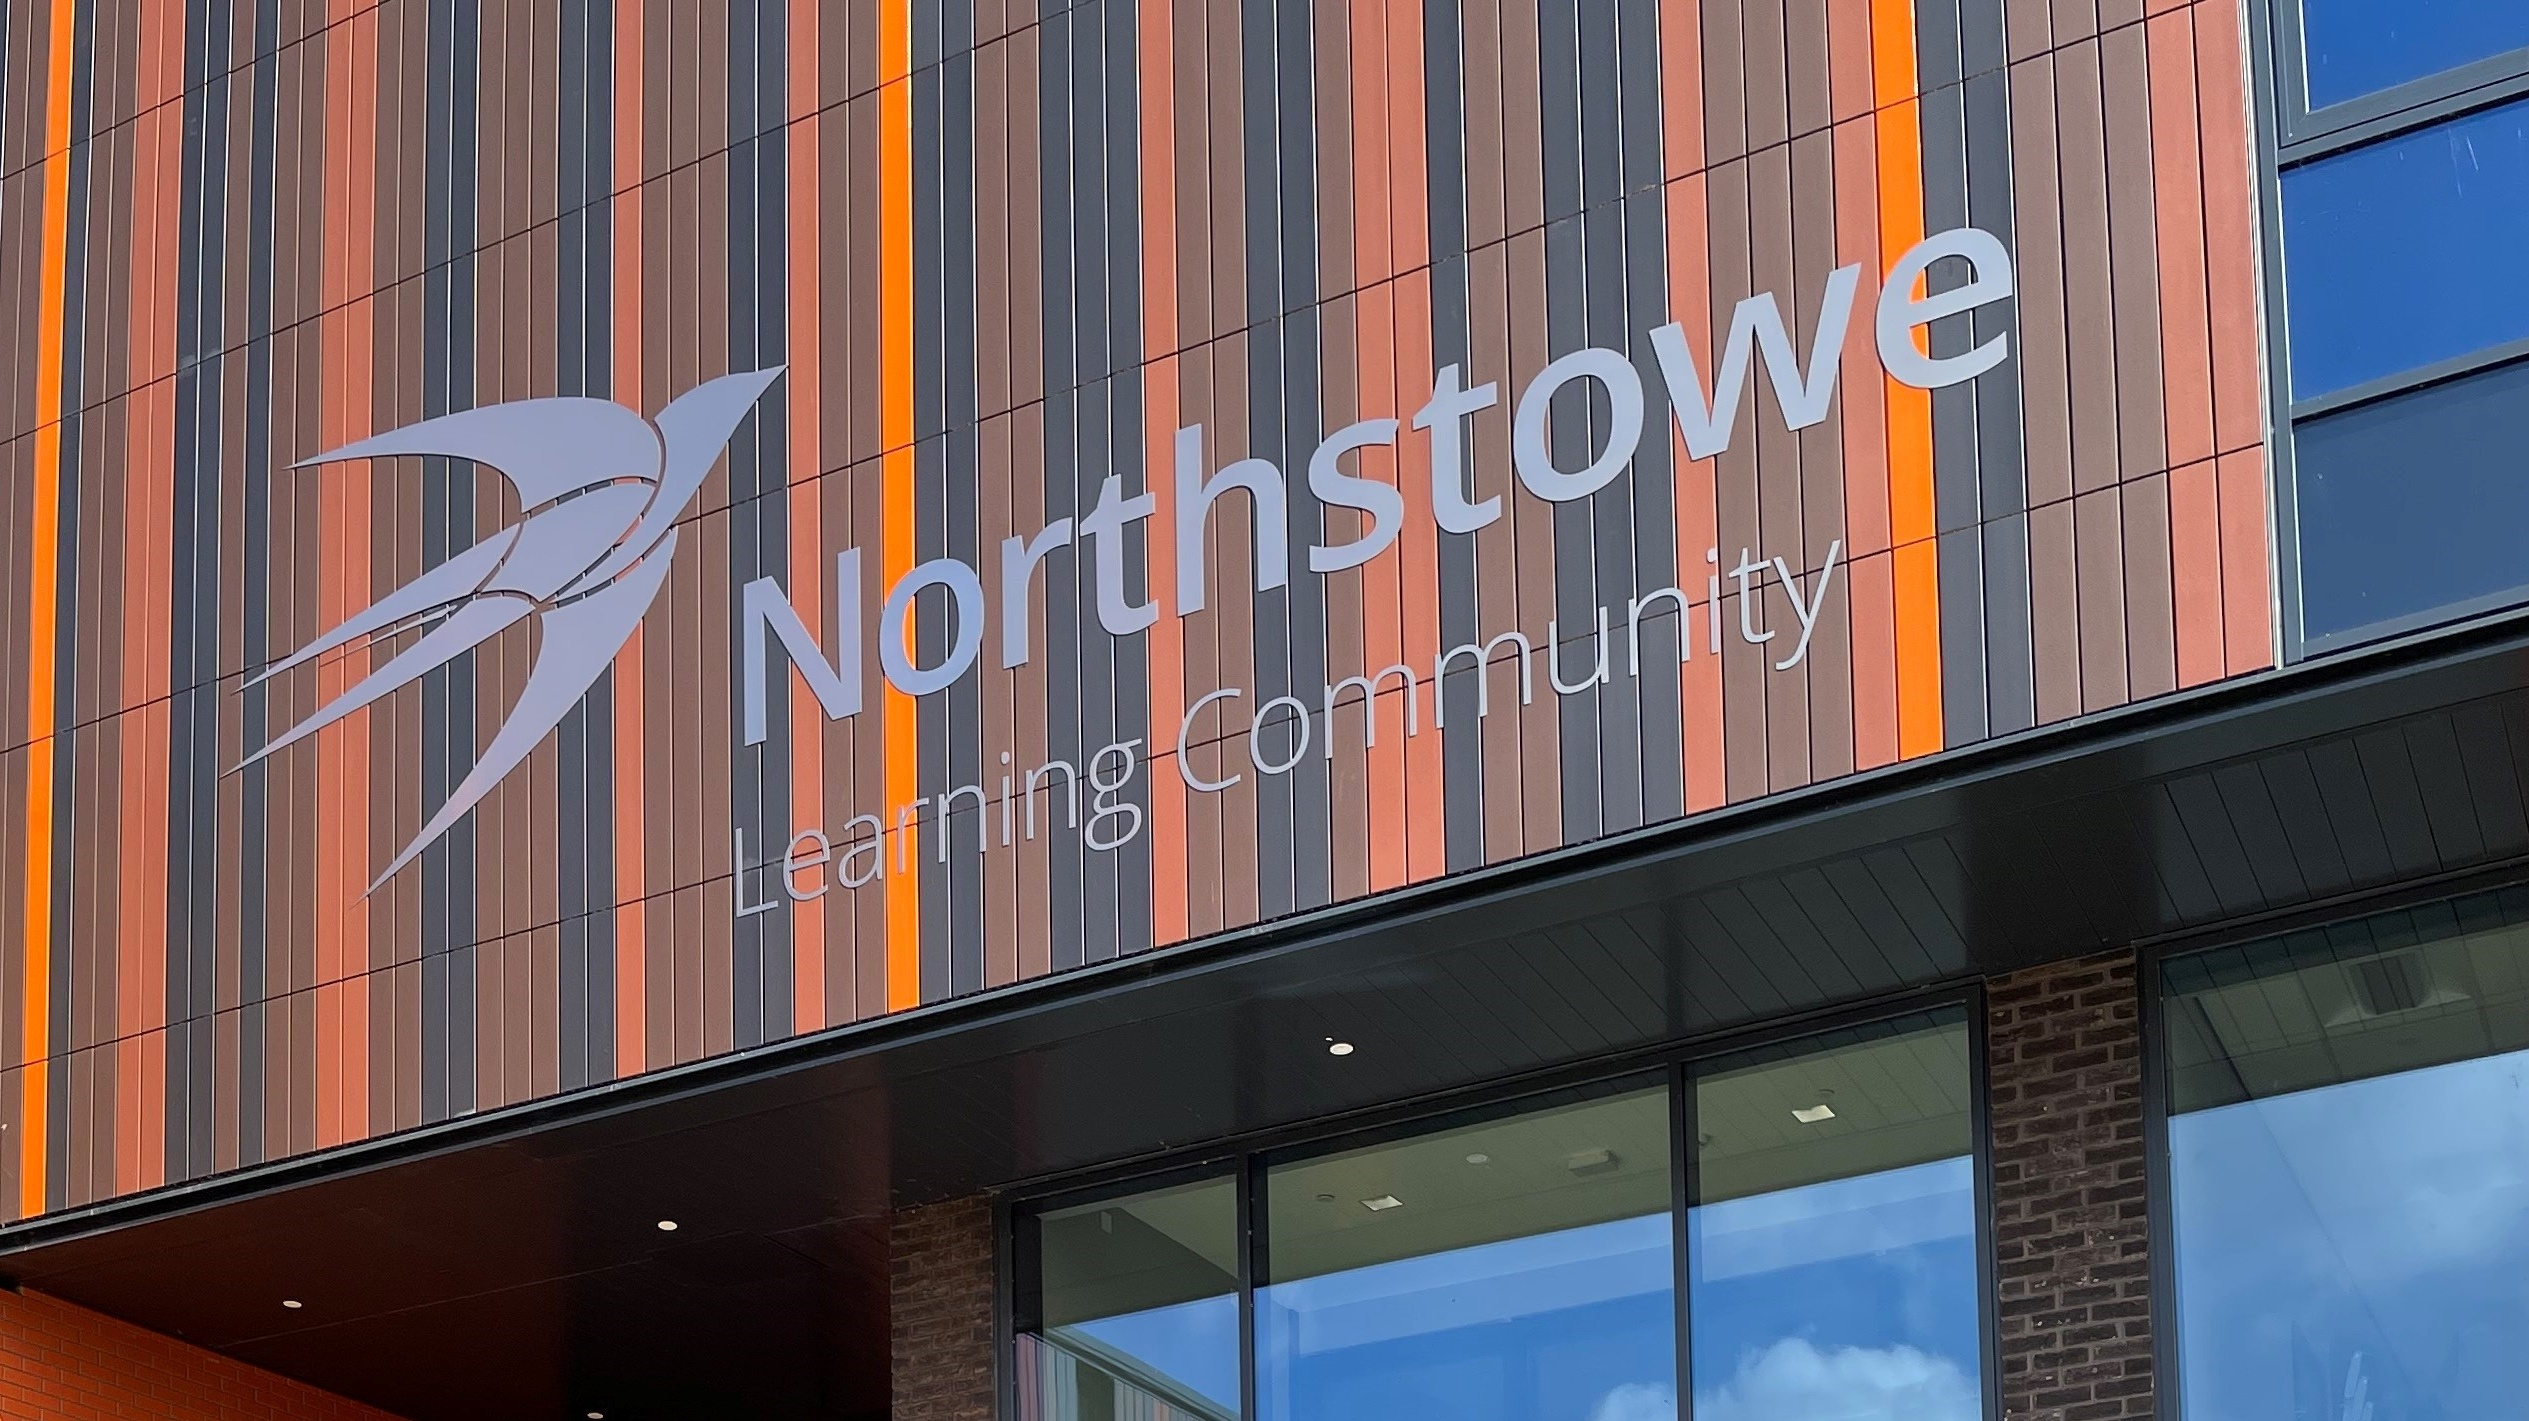 northstowe-secondary-college-celebrate-new-partnership-with-norwich-city-fc-regional-development-programme